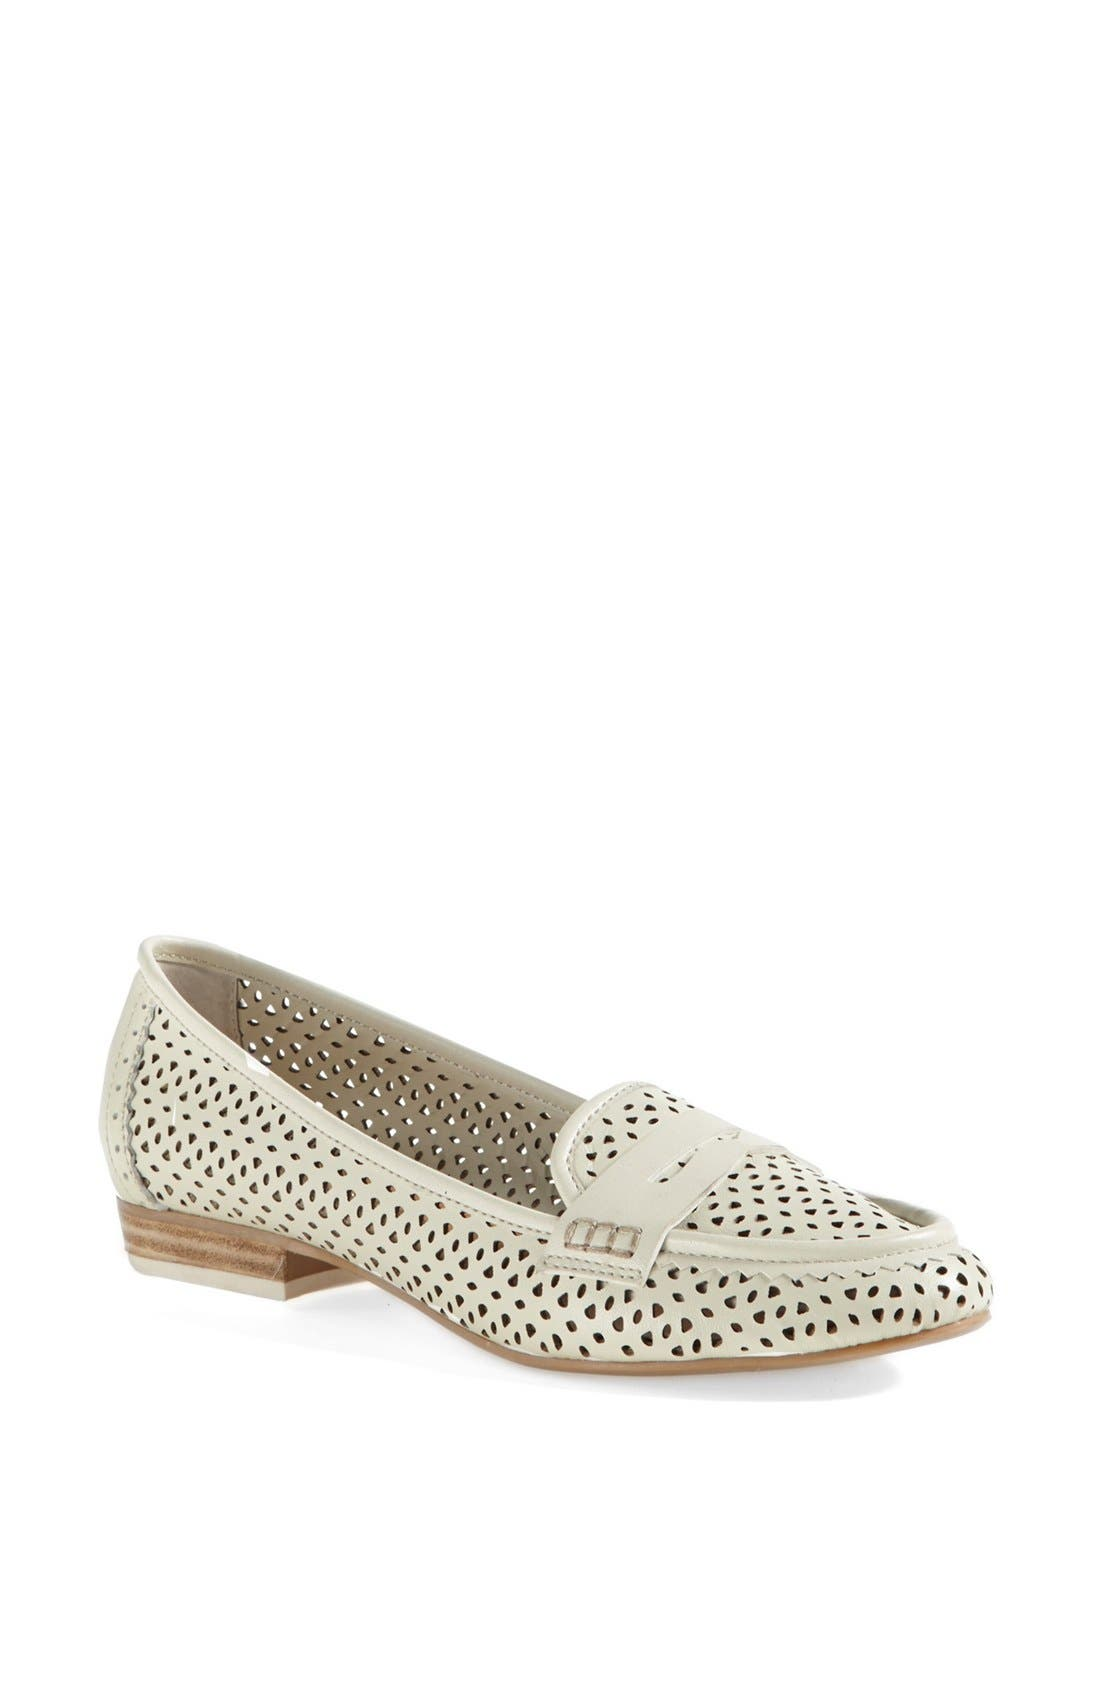 Main Image - DV by Dolce Vita 'Edlyn' Loafer